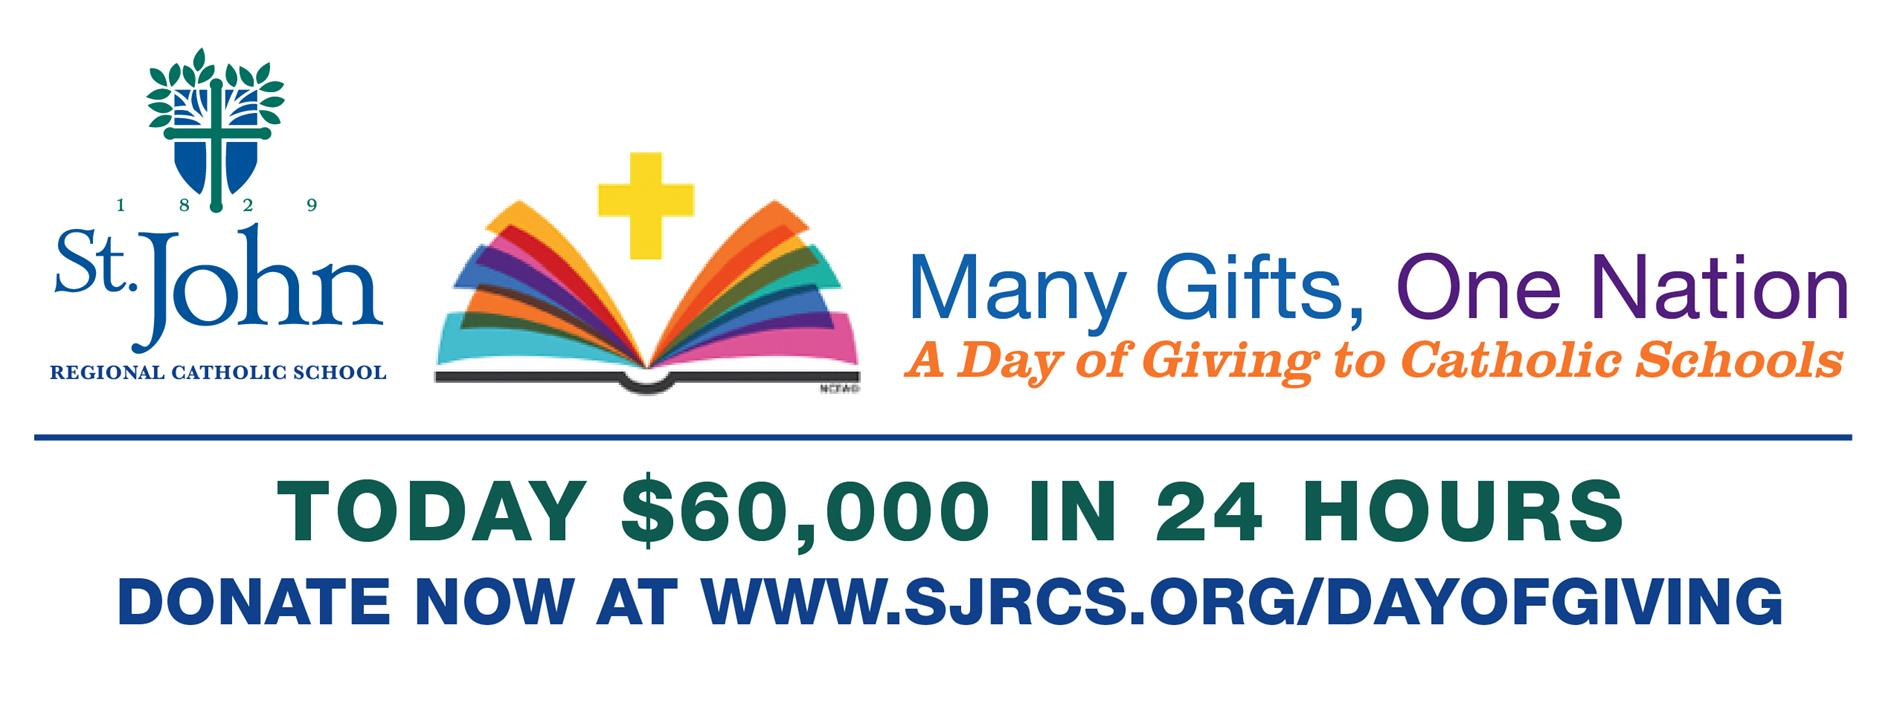 SJRCS Save the Date Day of Giving image